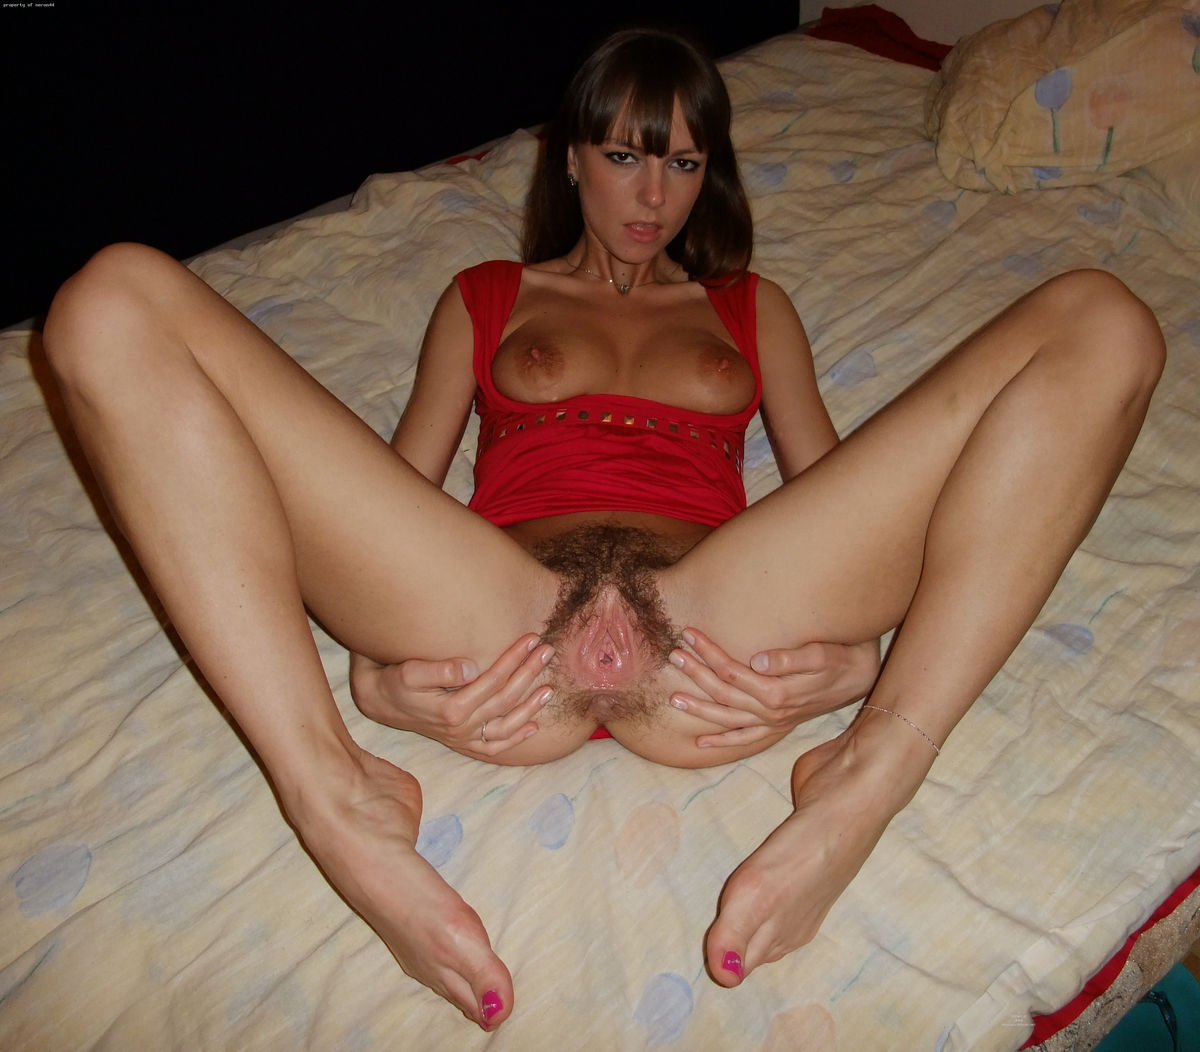 Very hot youngest pussy Exaggerate. think